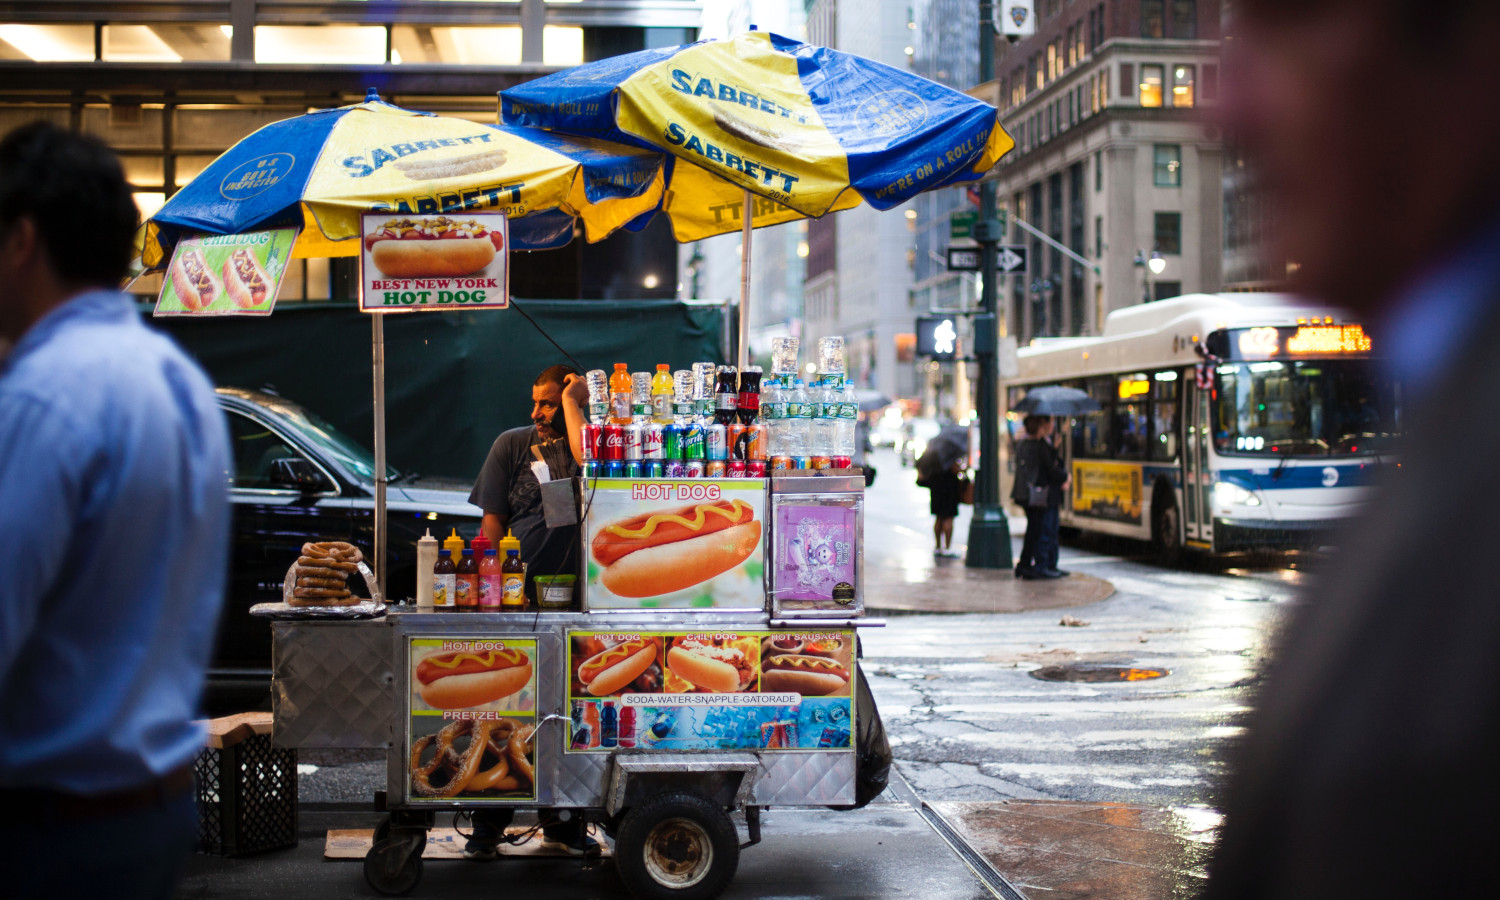 NYC sets agenda to become more food secure